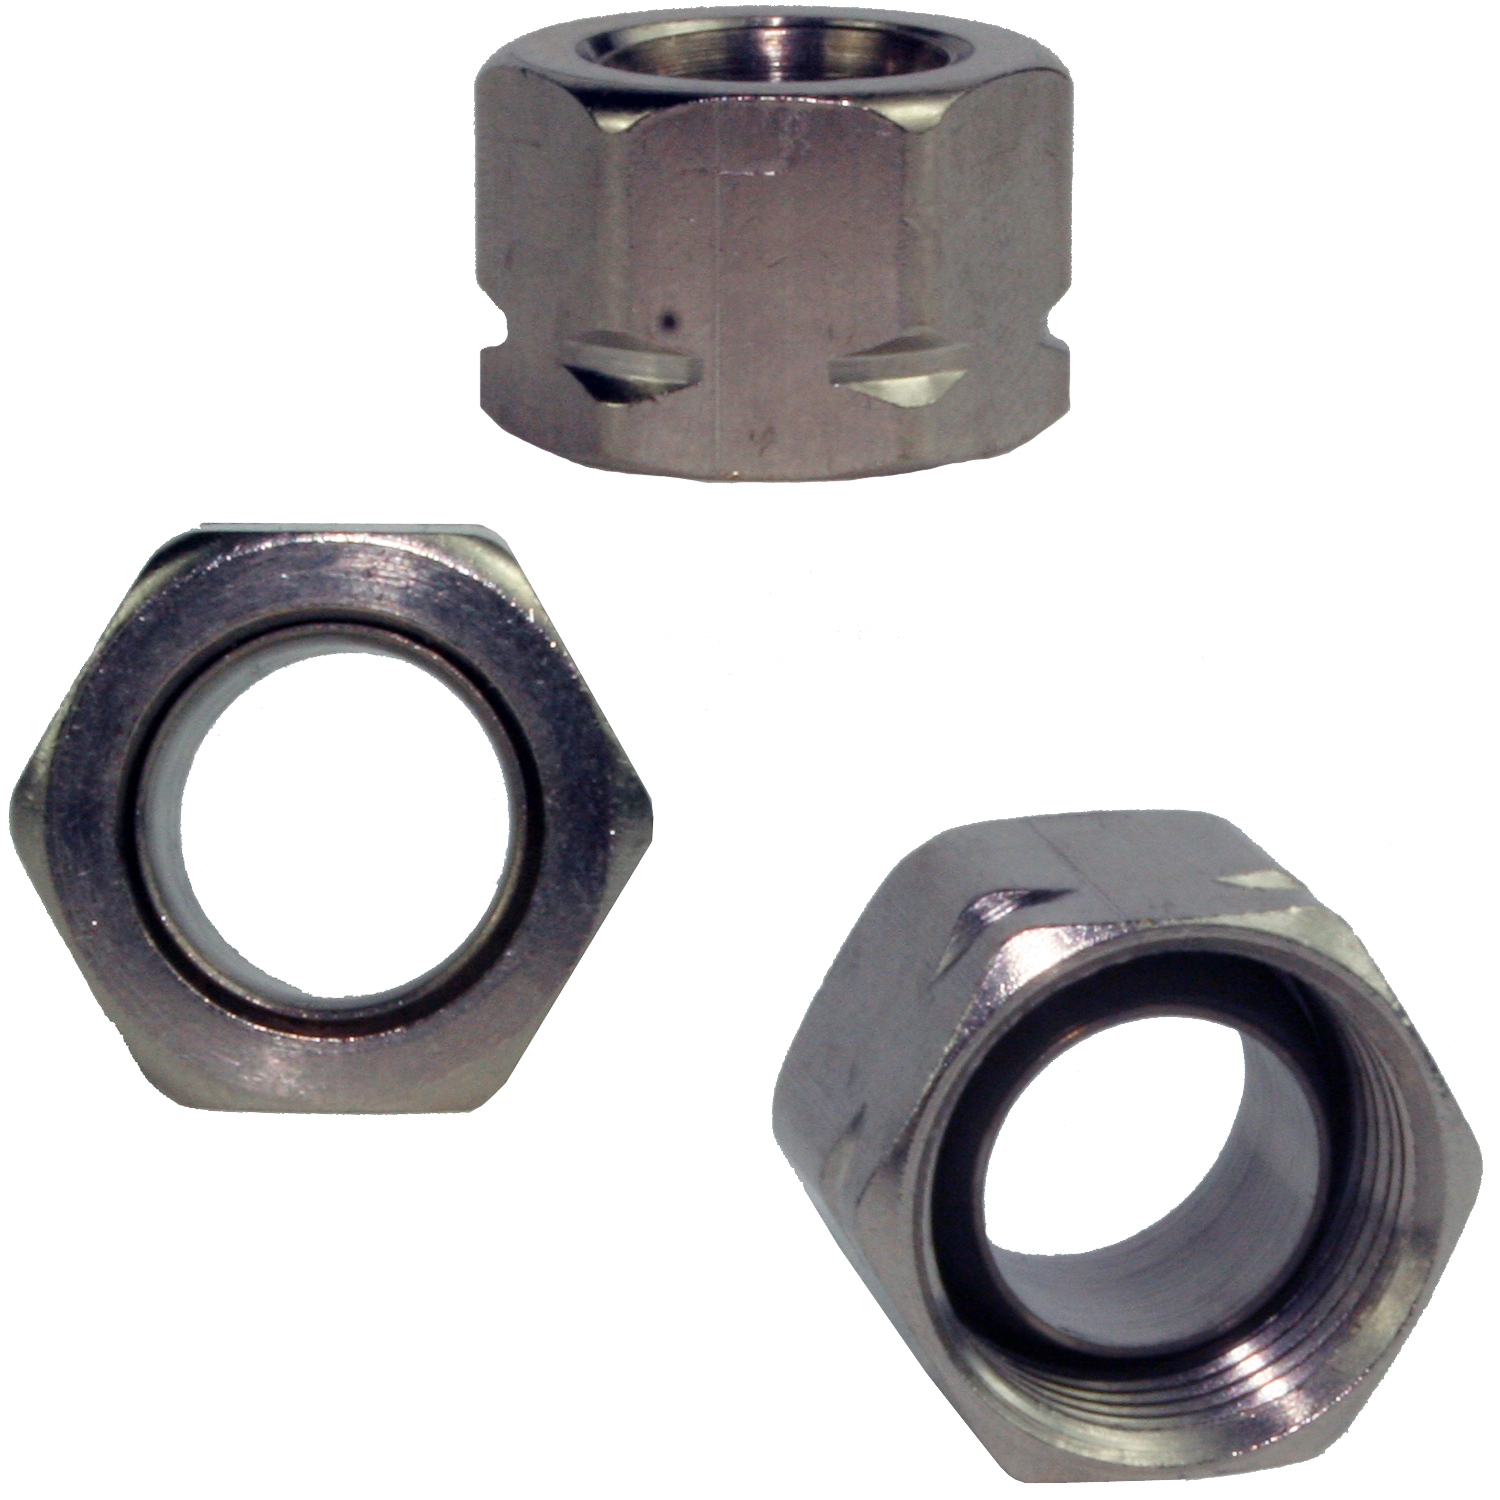 "3/8"" mutter for hydraulisk styring - 1 stk."